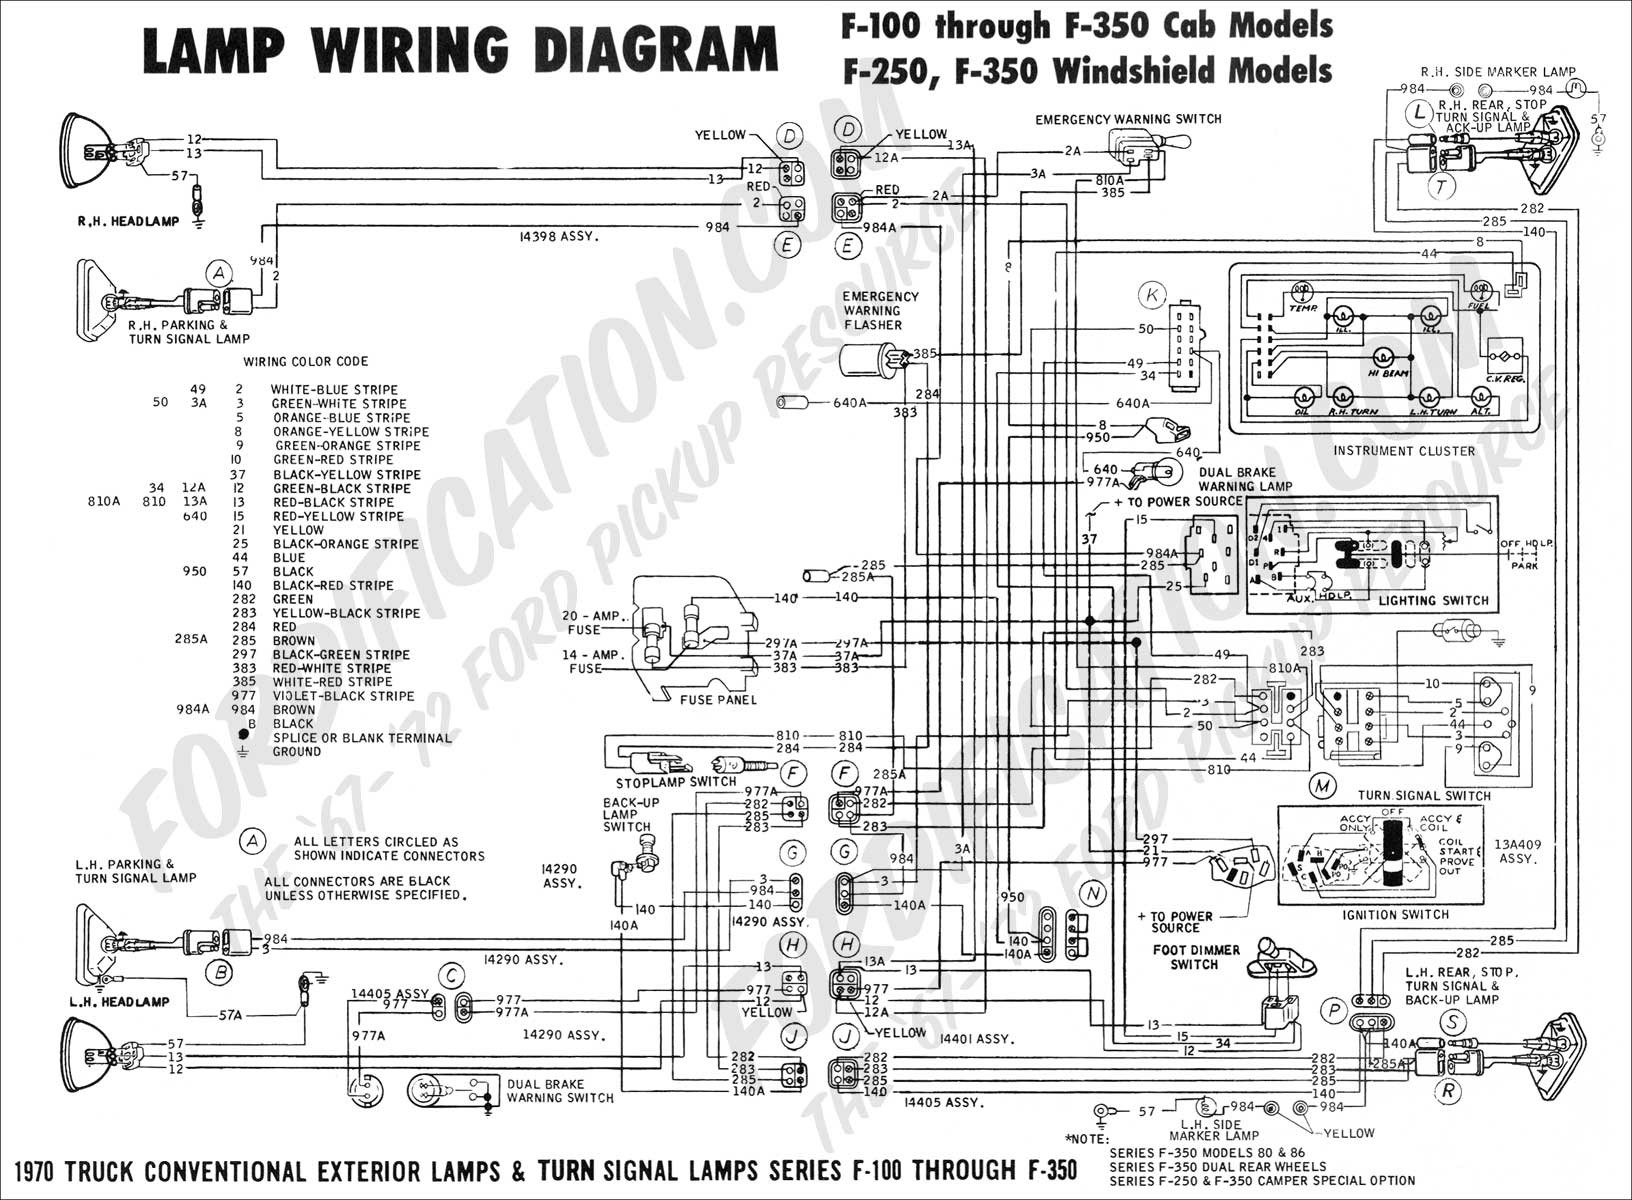 2002 F350 Wiring Diagram 2004 F350 Wiring Schematic Wiring Diagrams